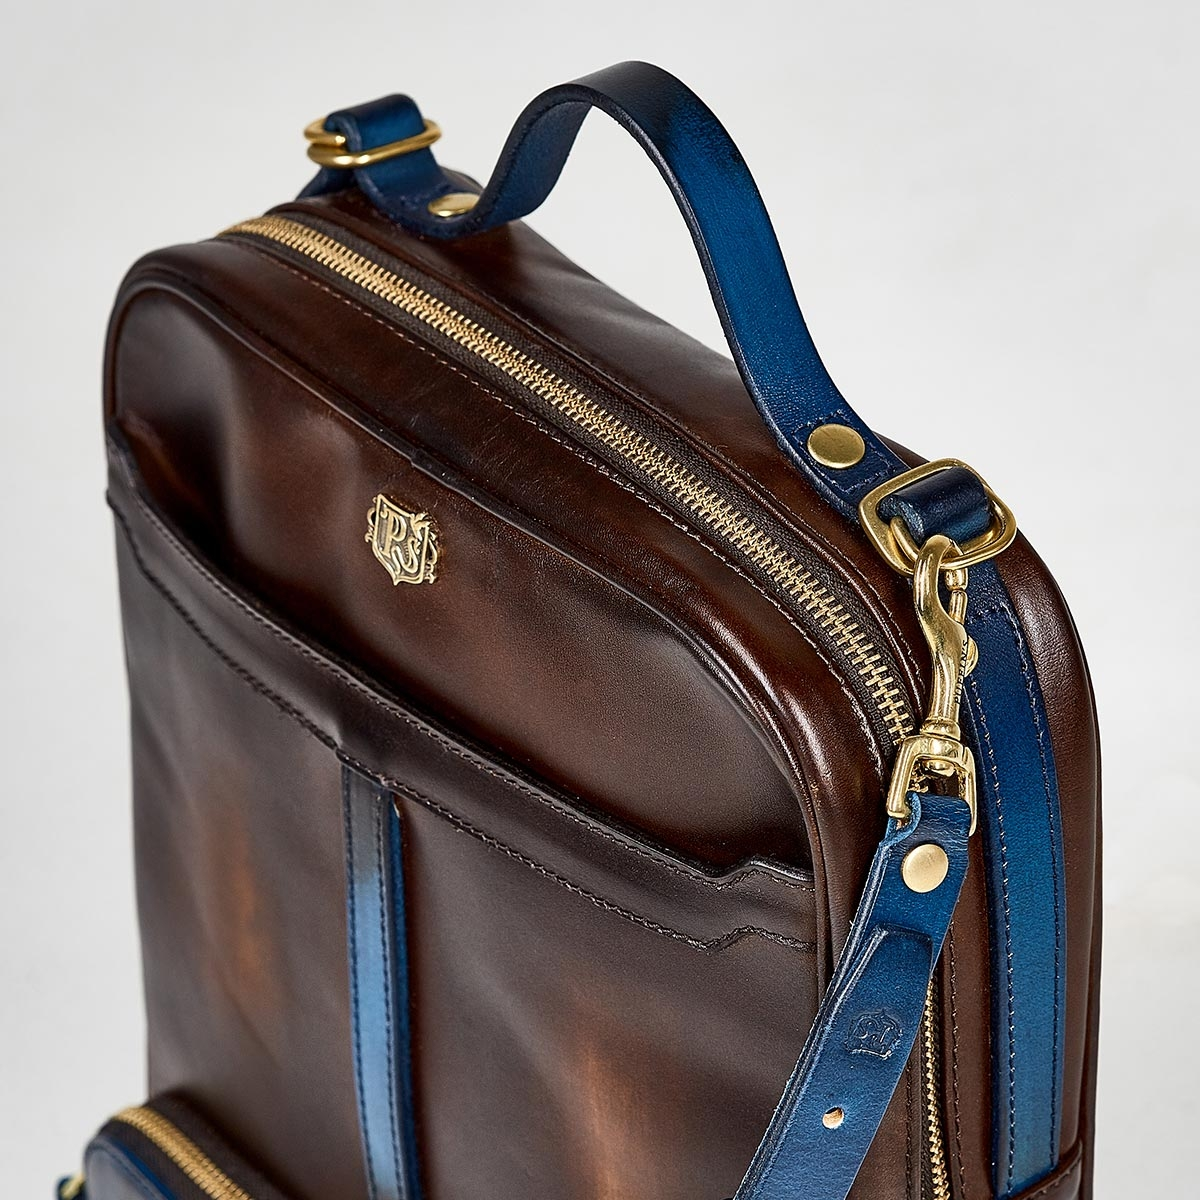 Crossbody bag-transformer CHELSEA sapphire blue & chestnut